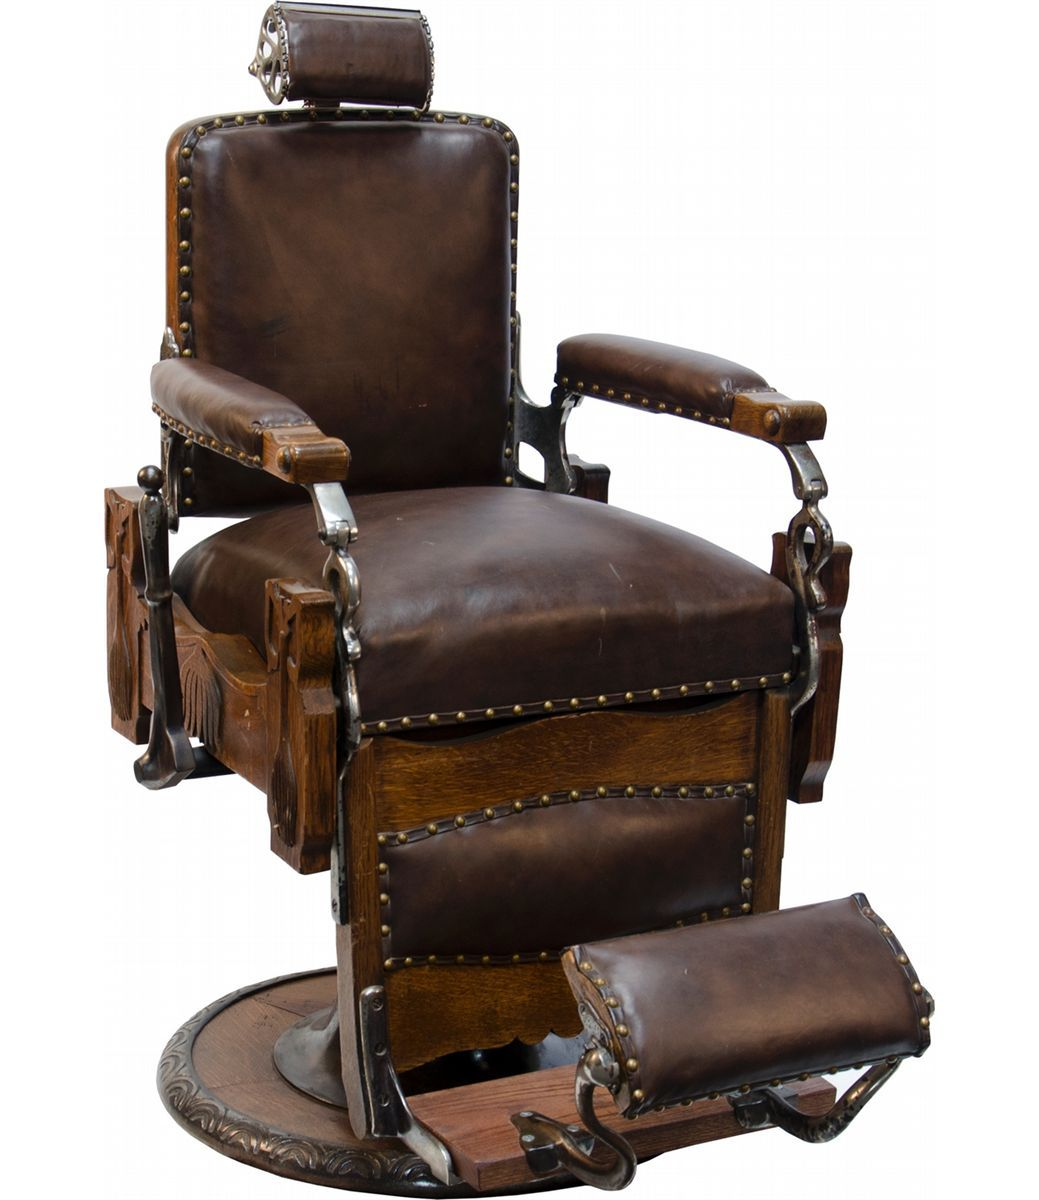 Old School Barber Chair Koken Barber Chair Wow Whey Back Then They Whare The